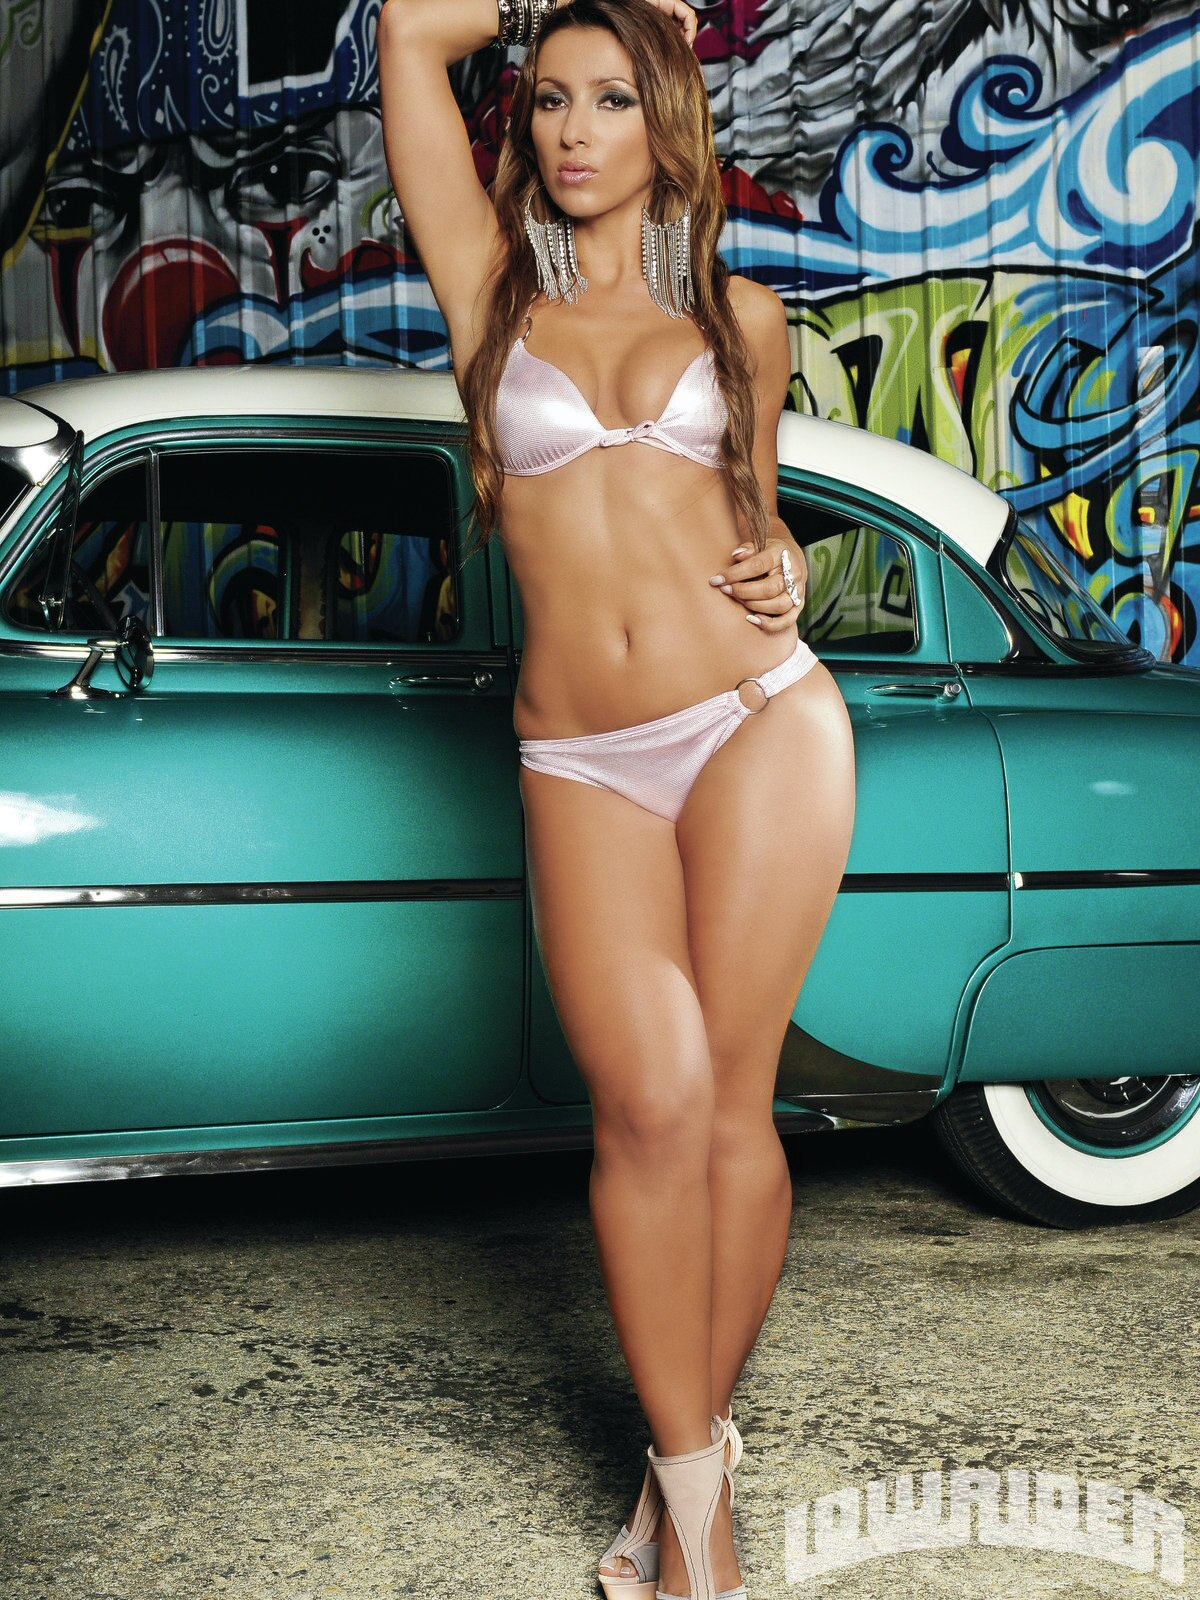 Tell Nude lowrider model pics